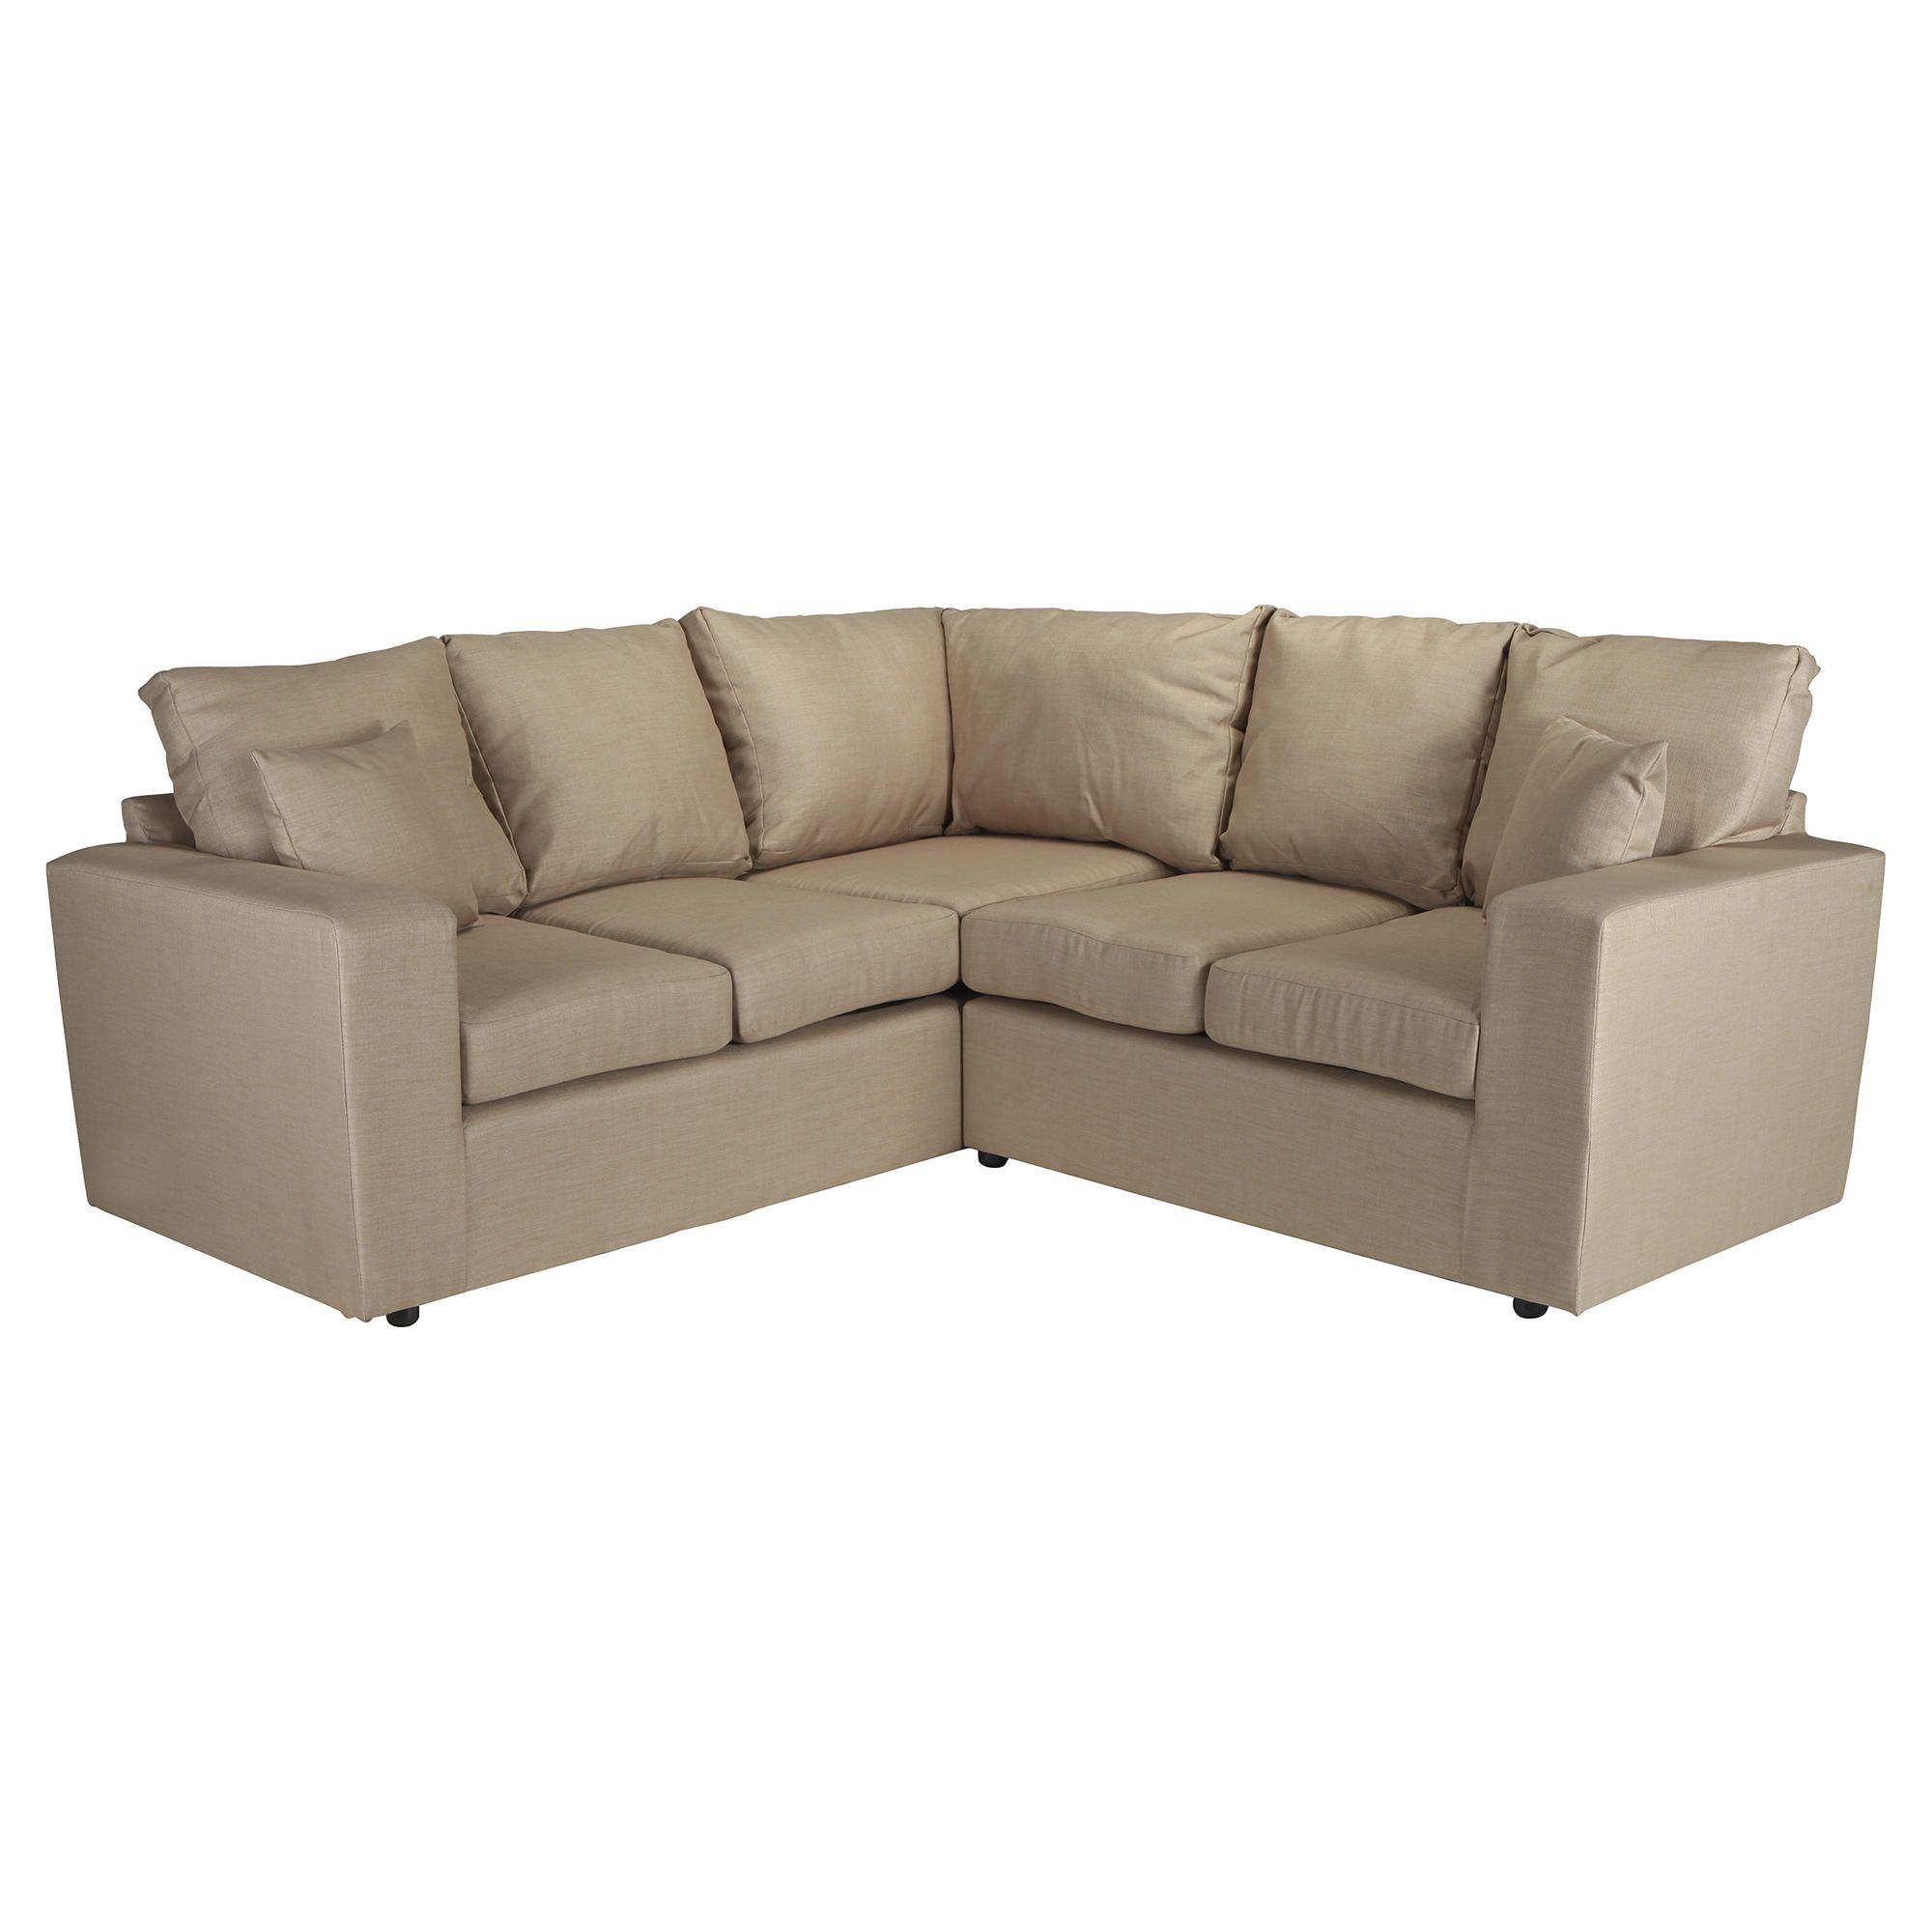 Home and garden furniture chester fabric small sofa for Sofa bed tesco